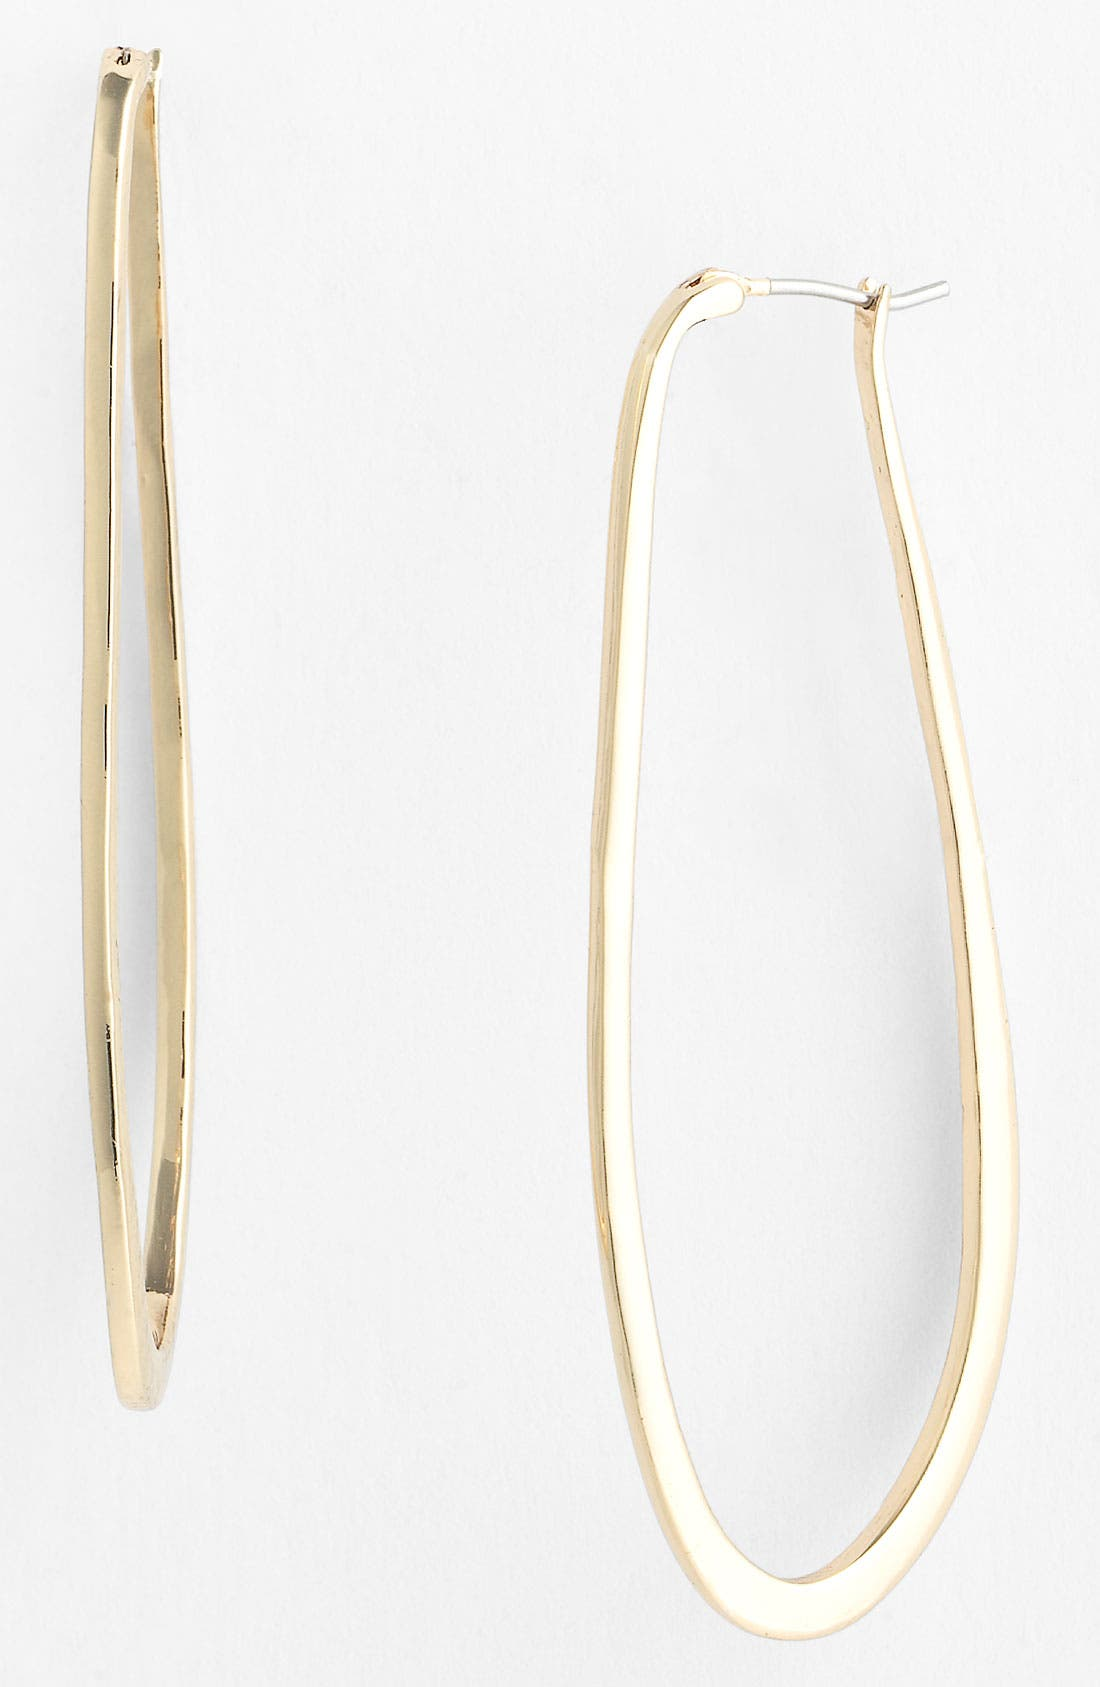 Main Image - Vince Camuto 'Basics' Elongated Hoop Earrings